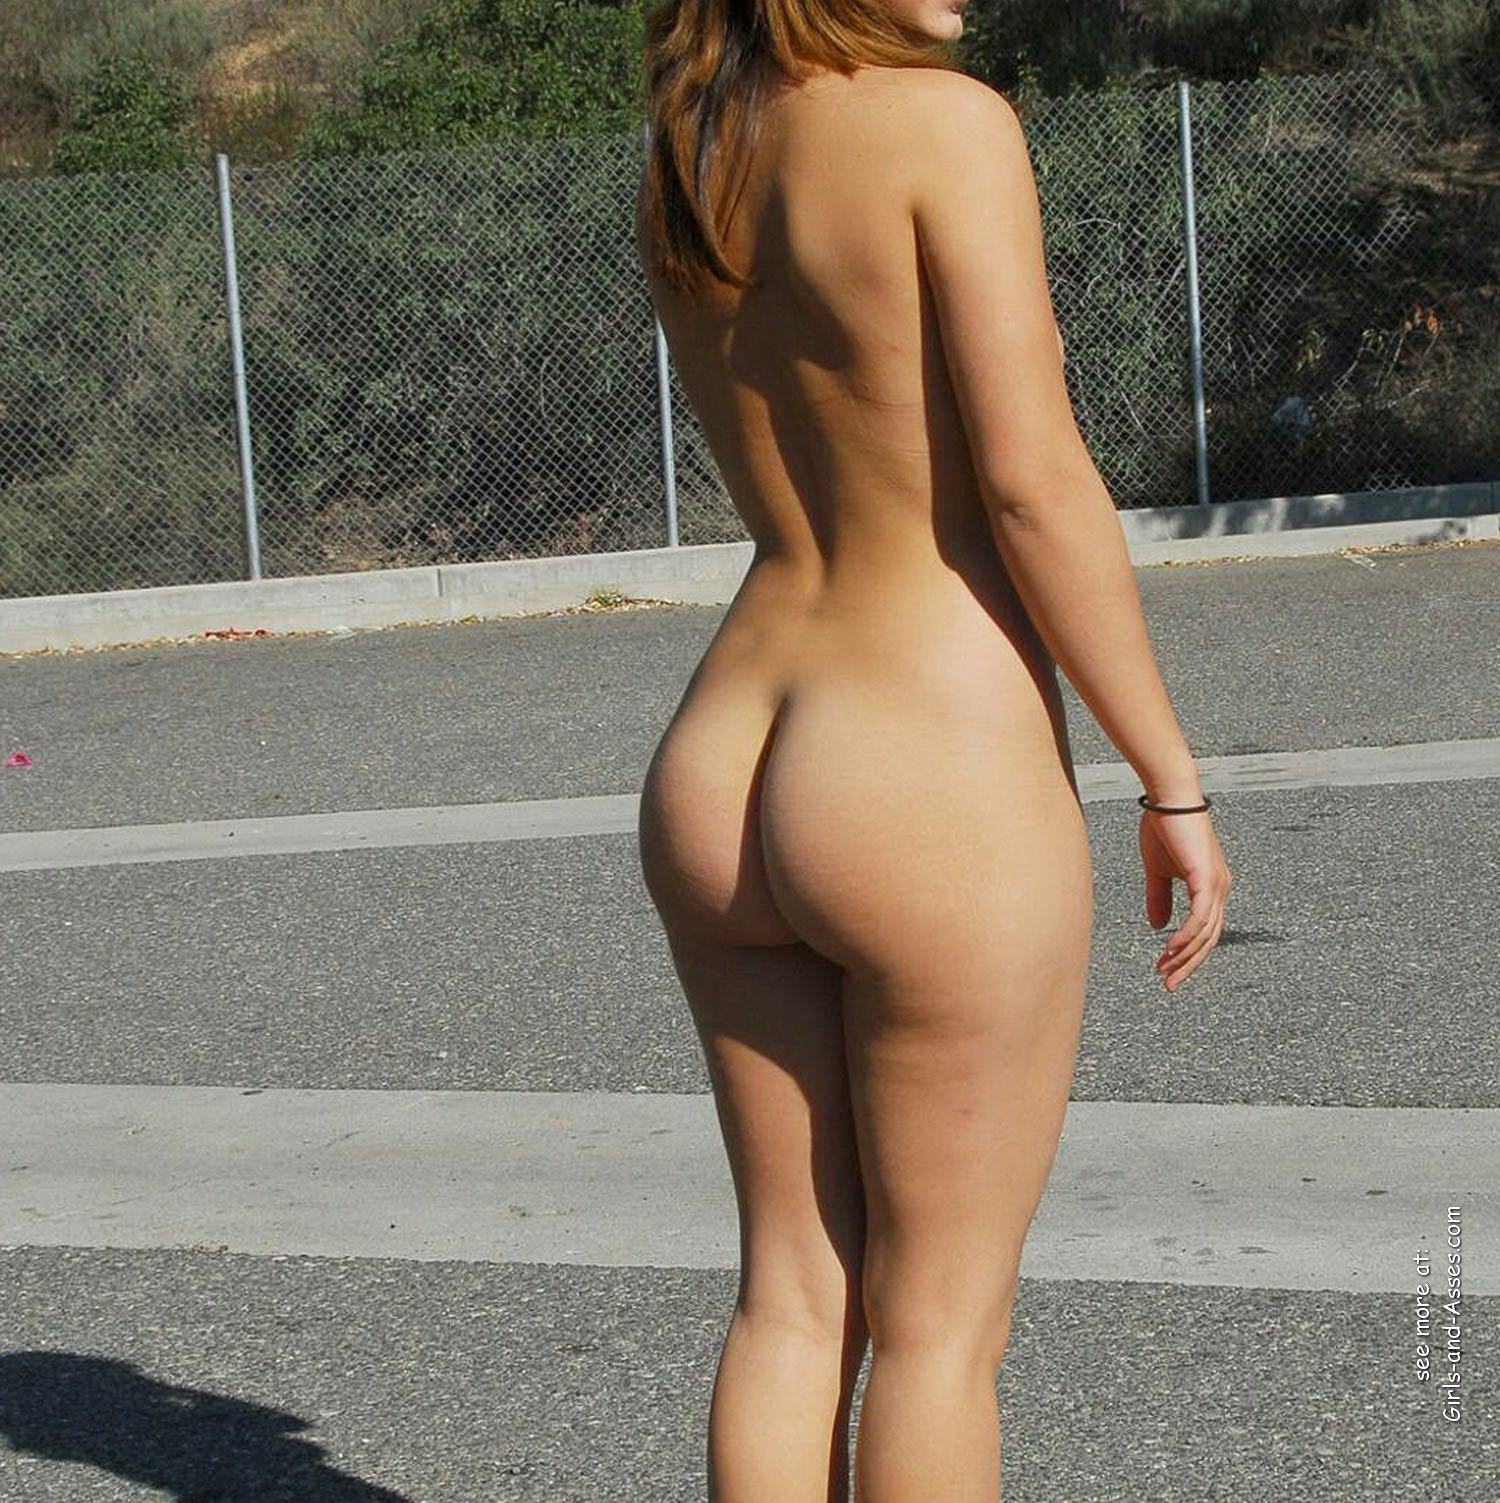 butts in nature naked woman on highway photo 03447